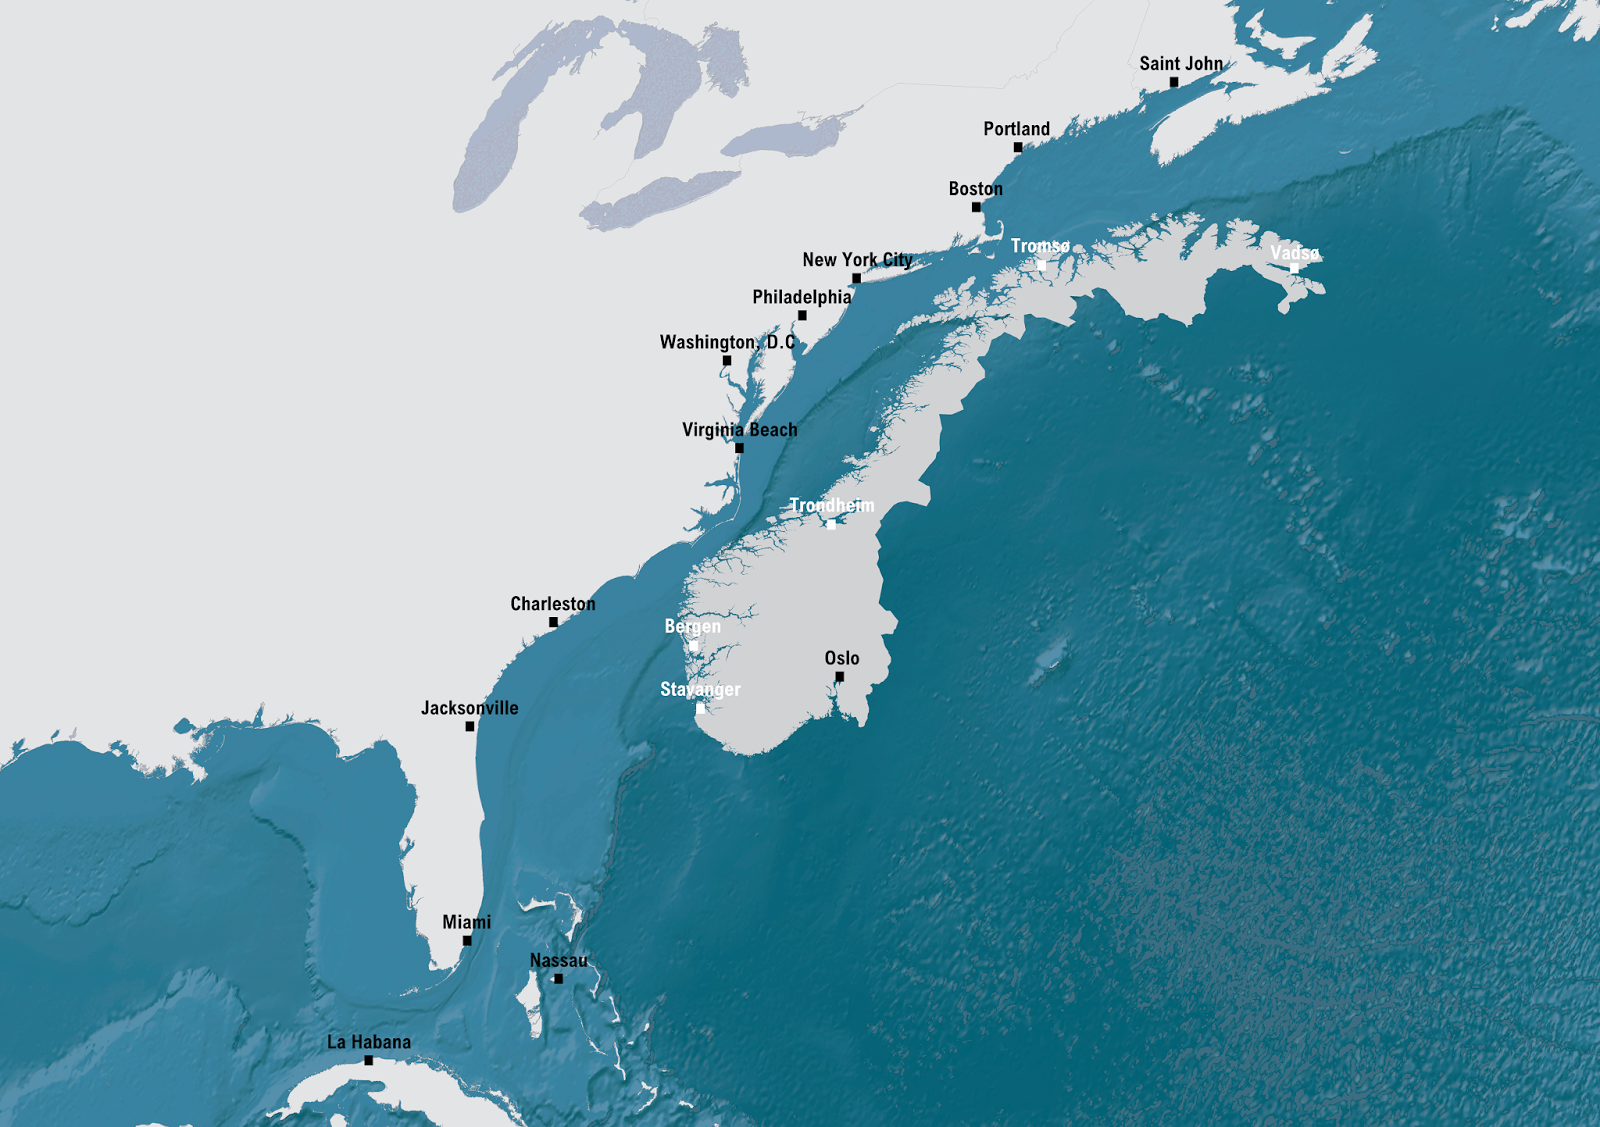 Norway compared to United States Eastern Coast